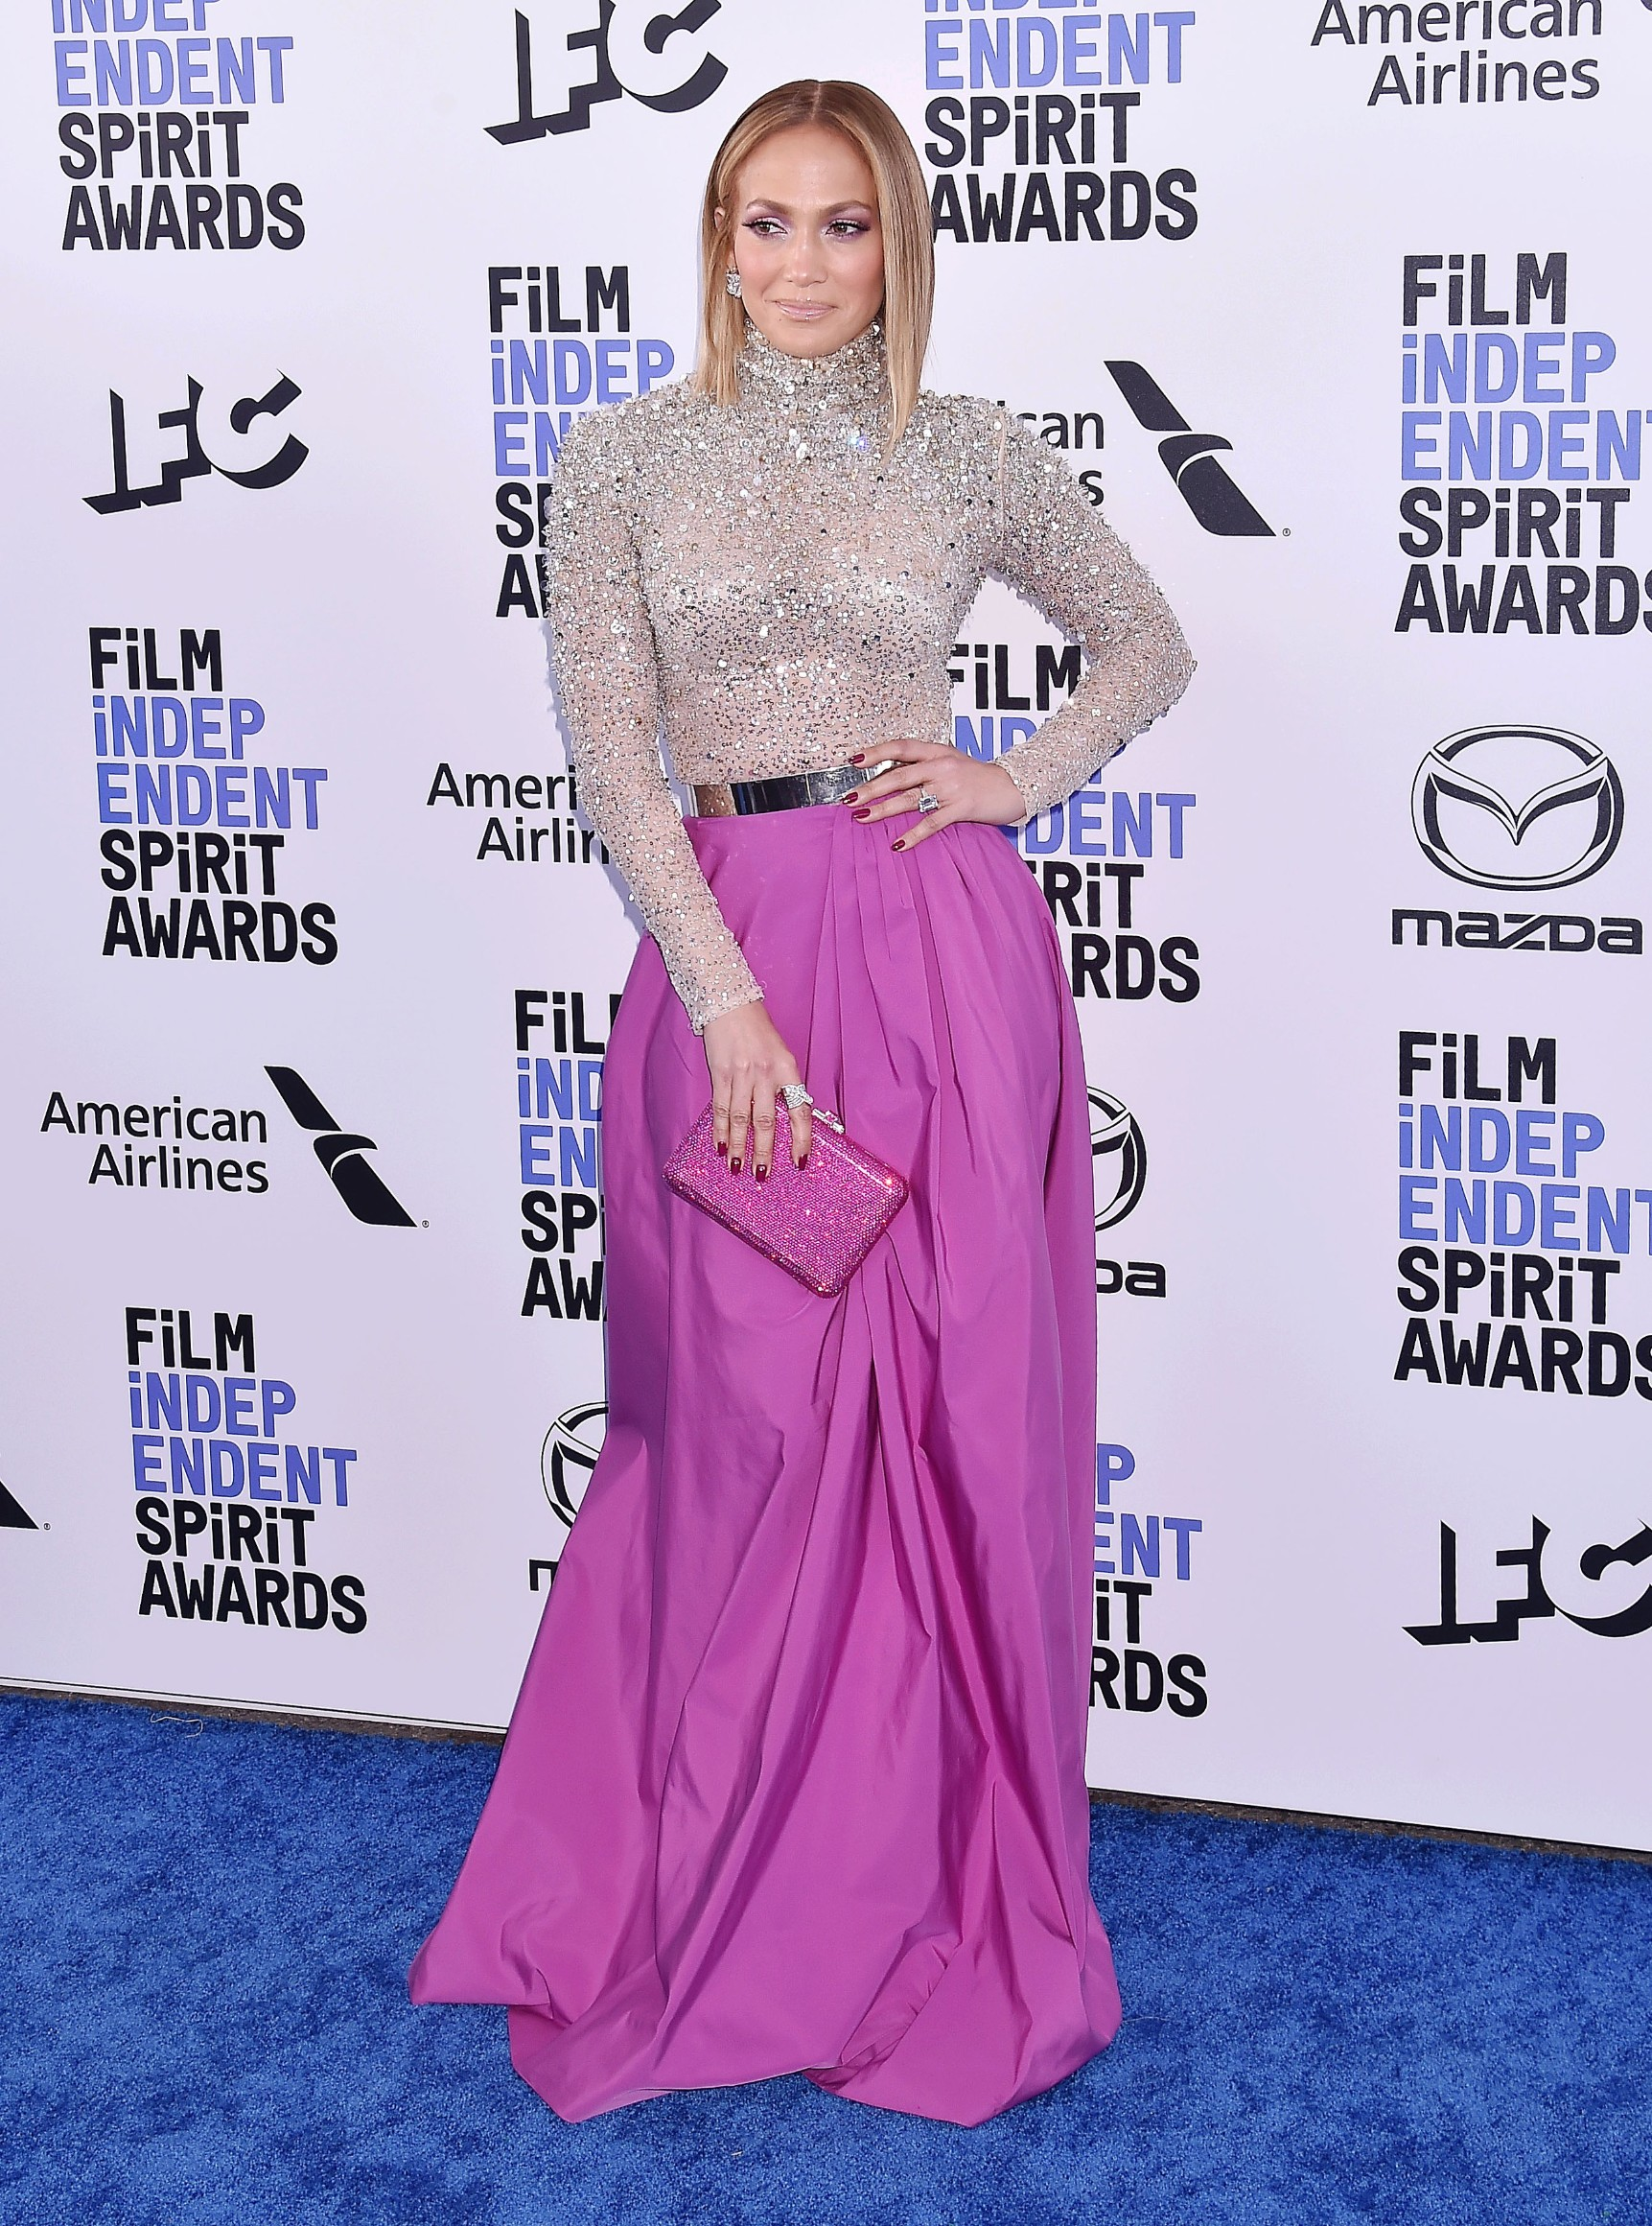 2020 Film Independent Spirit Awards - Arrivals. 08 Feb 2020, Image: 497633131, License: Rights-managed, Restrictions: ONLY Australia, Belgium, Canada, China, Croatia, Czech Republic, Denmark, Estonia, Finland, Germany, Greece, Hong Kong, Japan, Lithuania, Luxembourg, Netherlands, Norway, Portugal, Russia, Saudi Arabia, Serbia, Singapore, South Africa, South Korea, Spain, Sweden, Switzerland, United Kingdom, United States, Virgin Islands (Brit), Virgin Islands (USA), Model Release: no, Credit line: MEGA / The Mega Agency / Profimedia